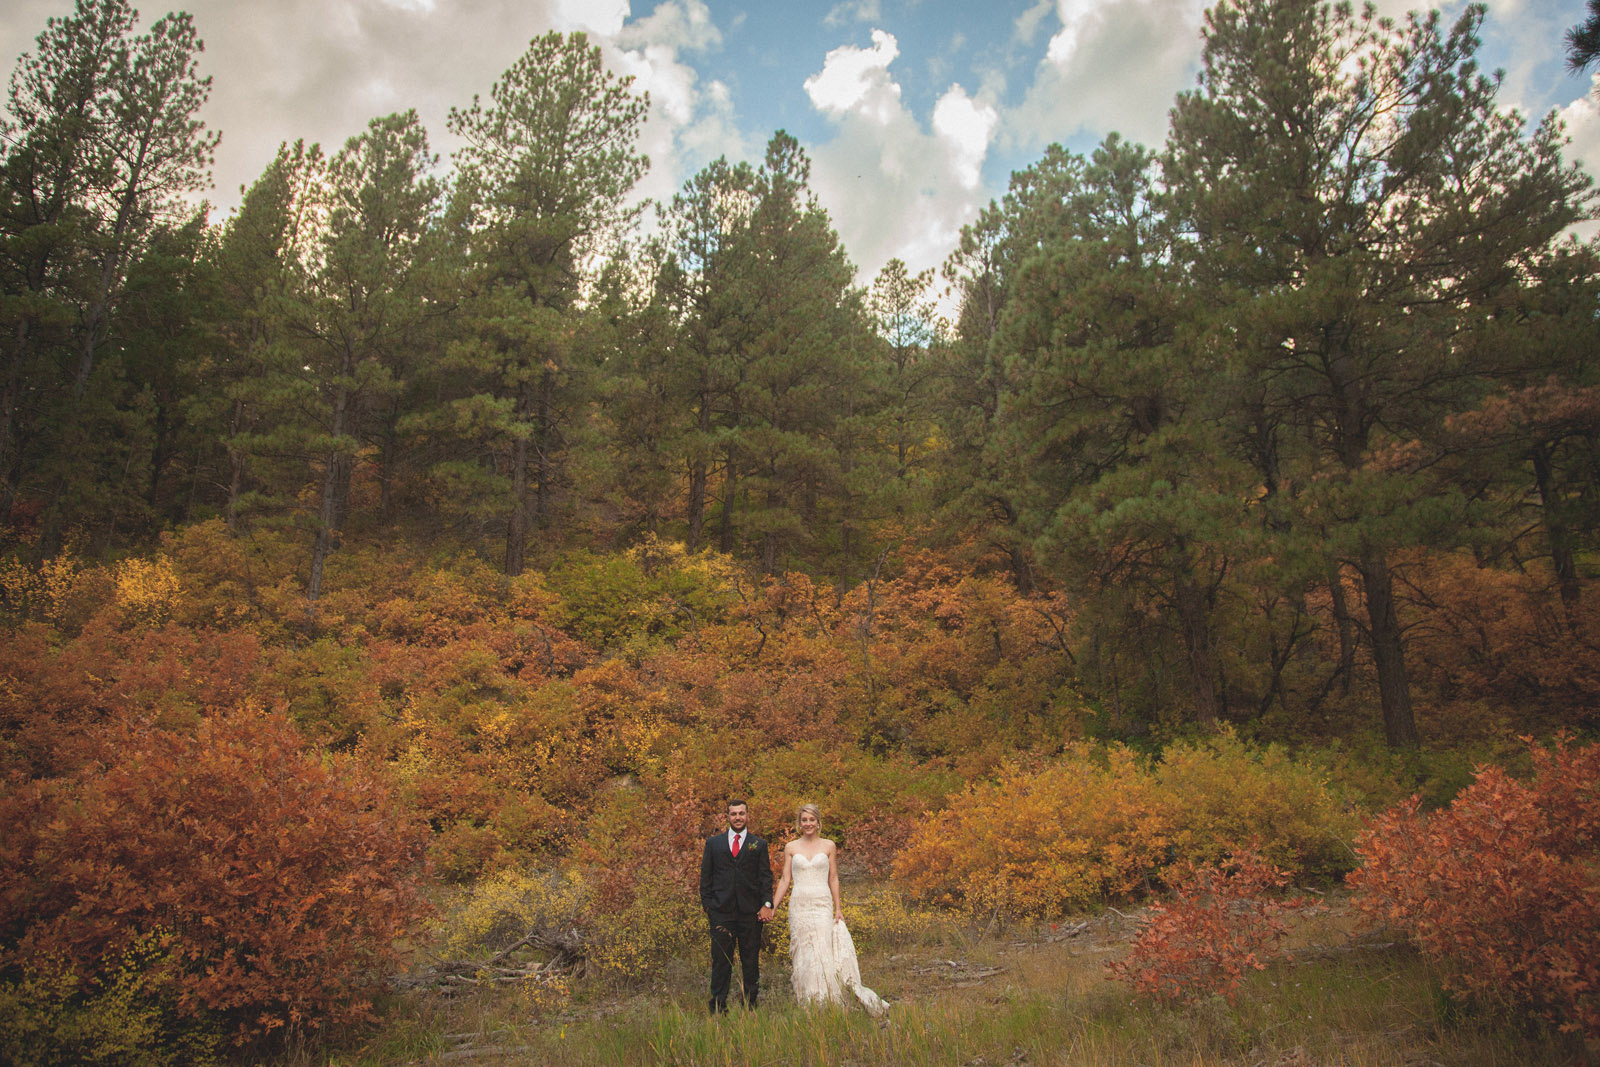 154-beautiful-bride-and-groom-photojournalist-portraits-at-elopement-wedding-in-durango-colorado-forest